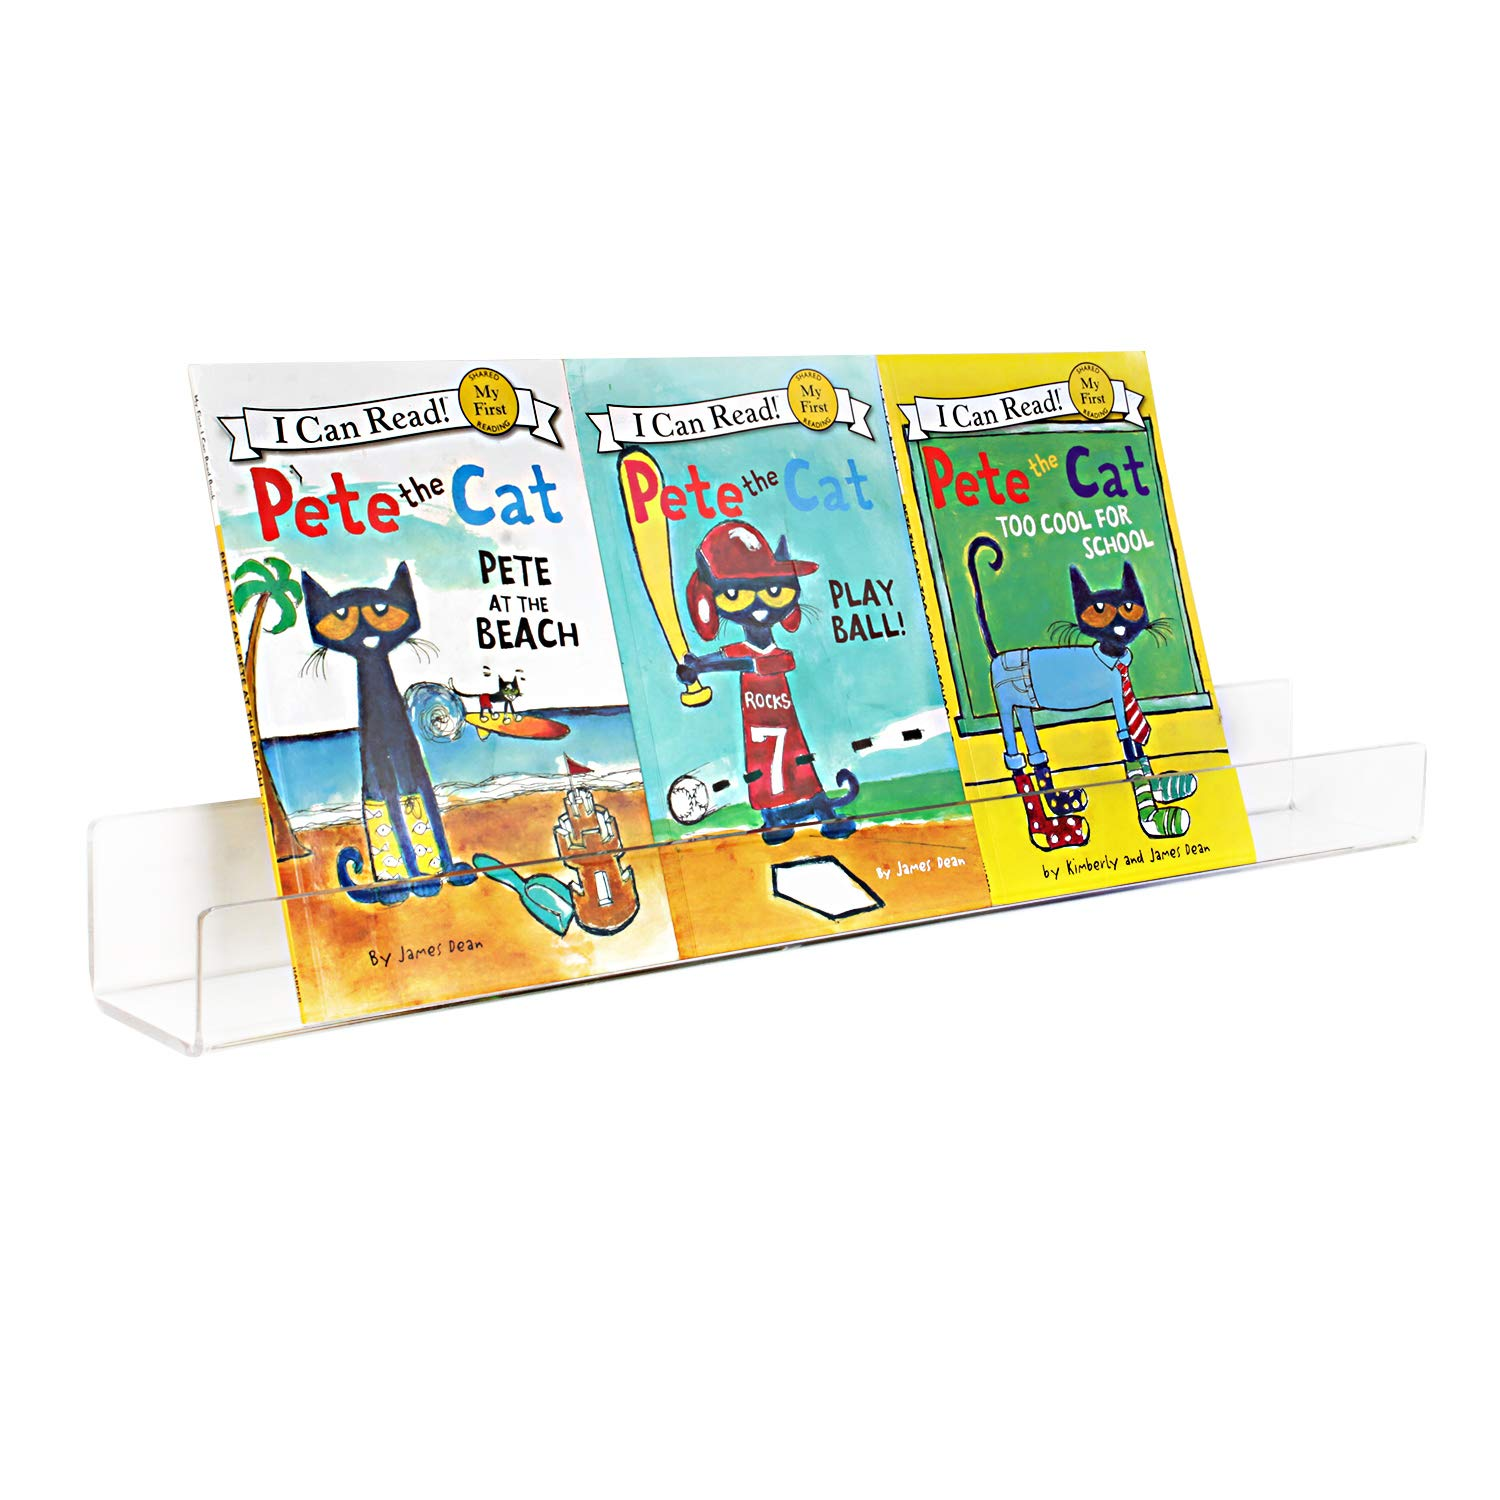 Acrylic Invisible Kids Floating Bookshelves 2 Pack - 5mm Thick, Free Screw Driver - 3 Lengths: 16.5/24/36 Inch Wall Mounted Floating Ledge Shelf; Perfect for displaying books (16.5 inch 1 Pack, 5mm Thick) NIUBEE